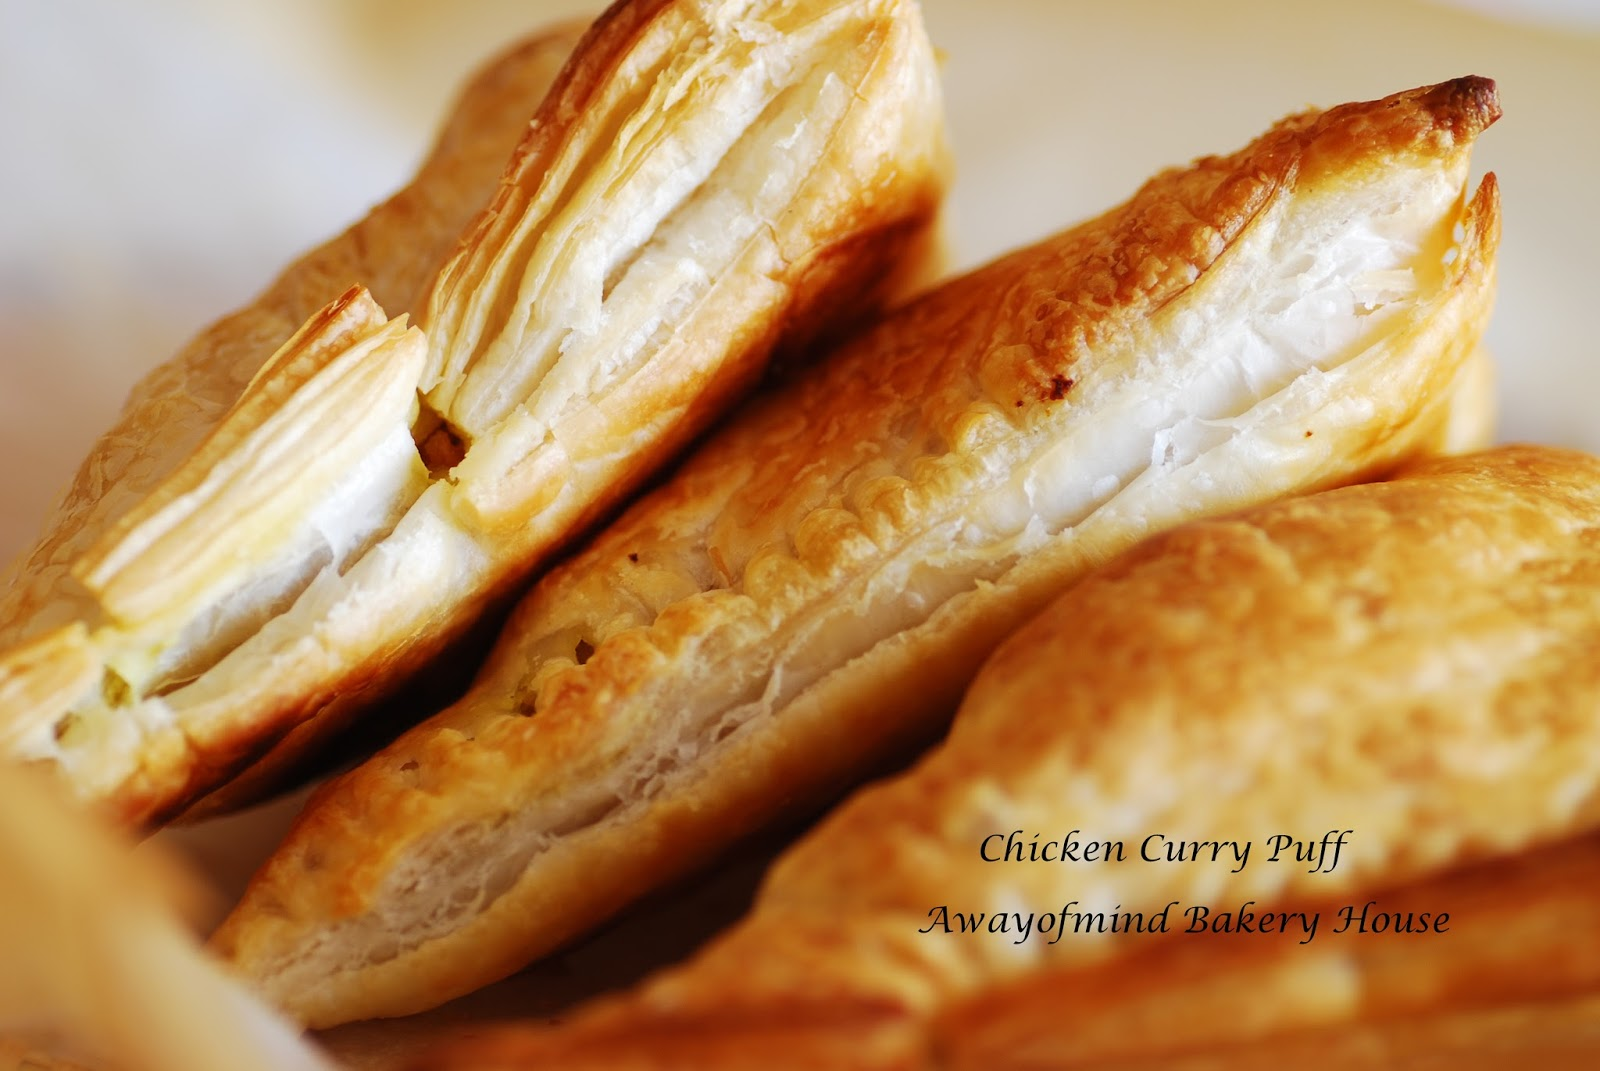 Awayofmind Bakery House: Easy Chicken Curry Puff